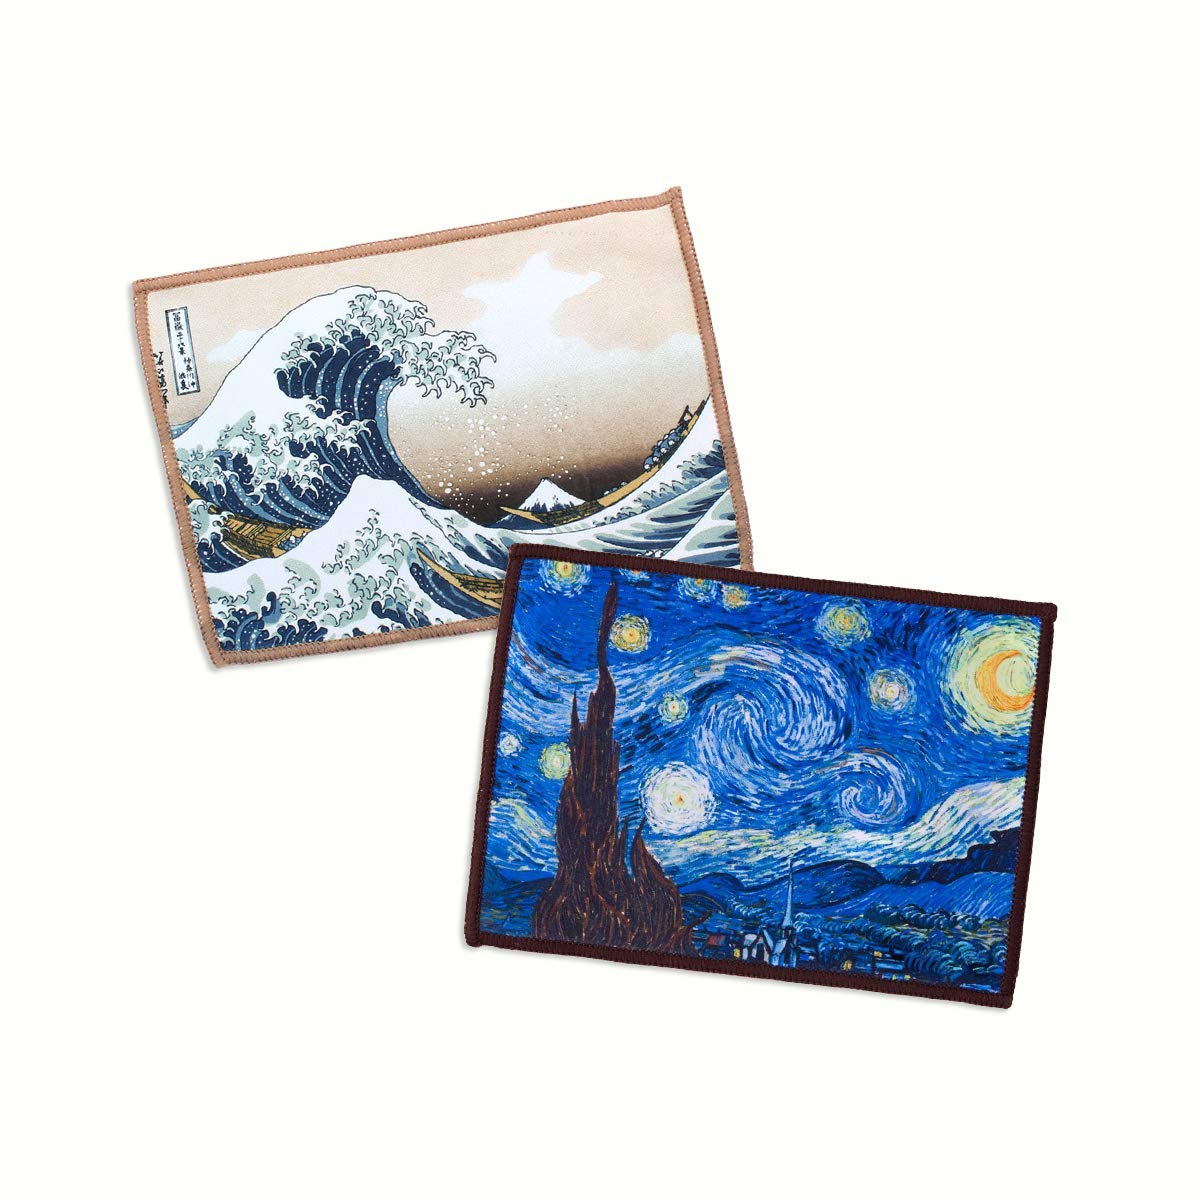 2-Pack Lynktec Smartie Microfiber Cleaning Cloth for iPad and Touch Screen (Hokusai Great Wave + Van Gogh Starry Night) by Lynktec